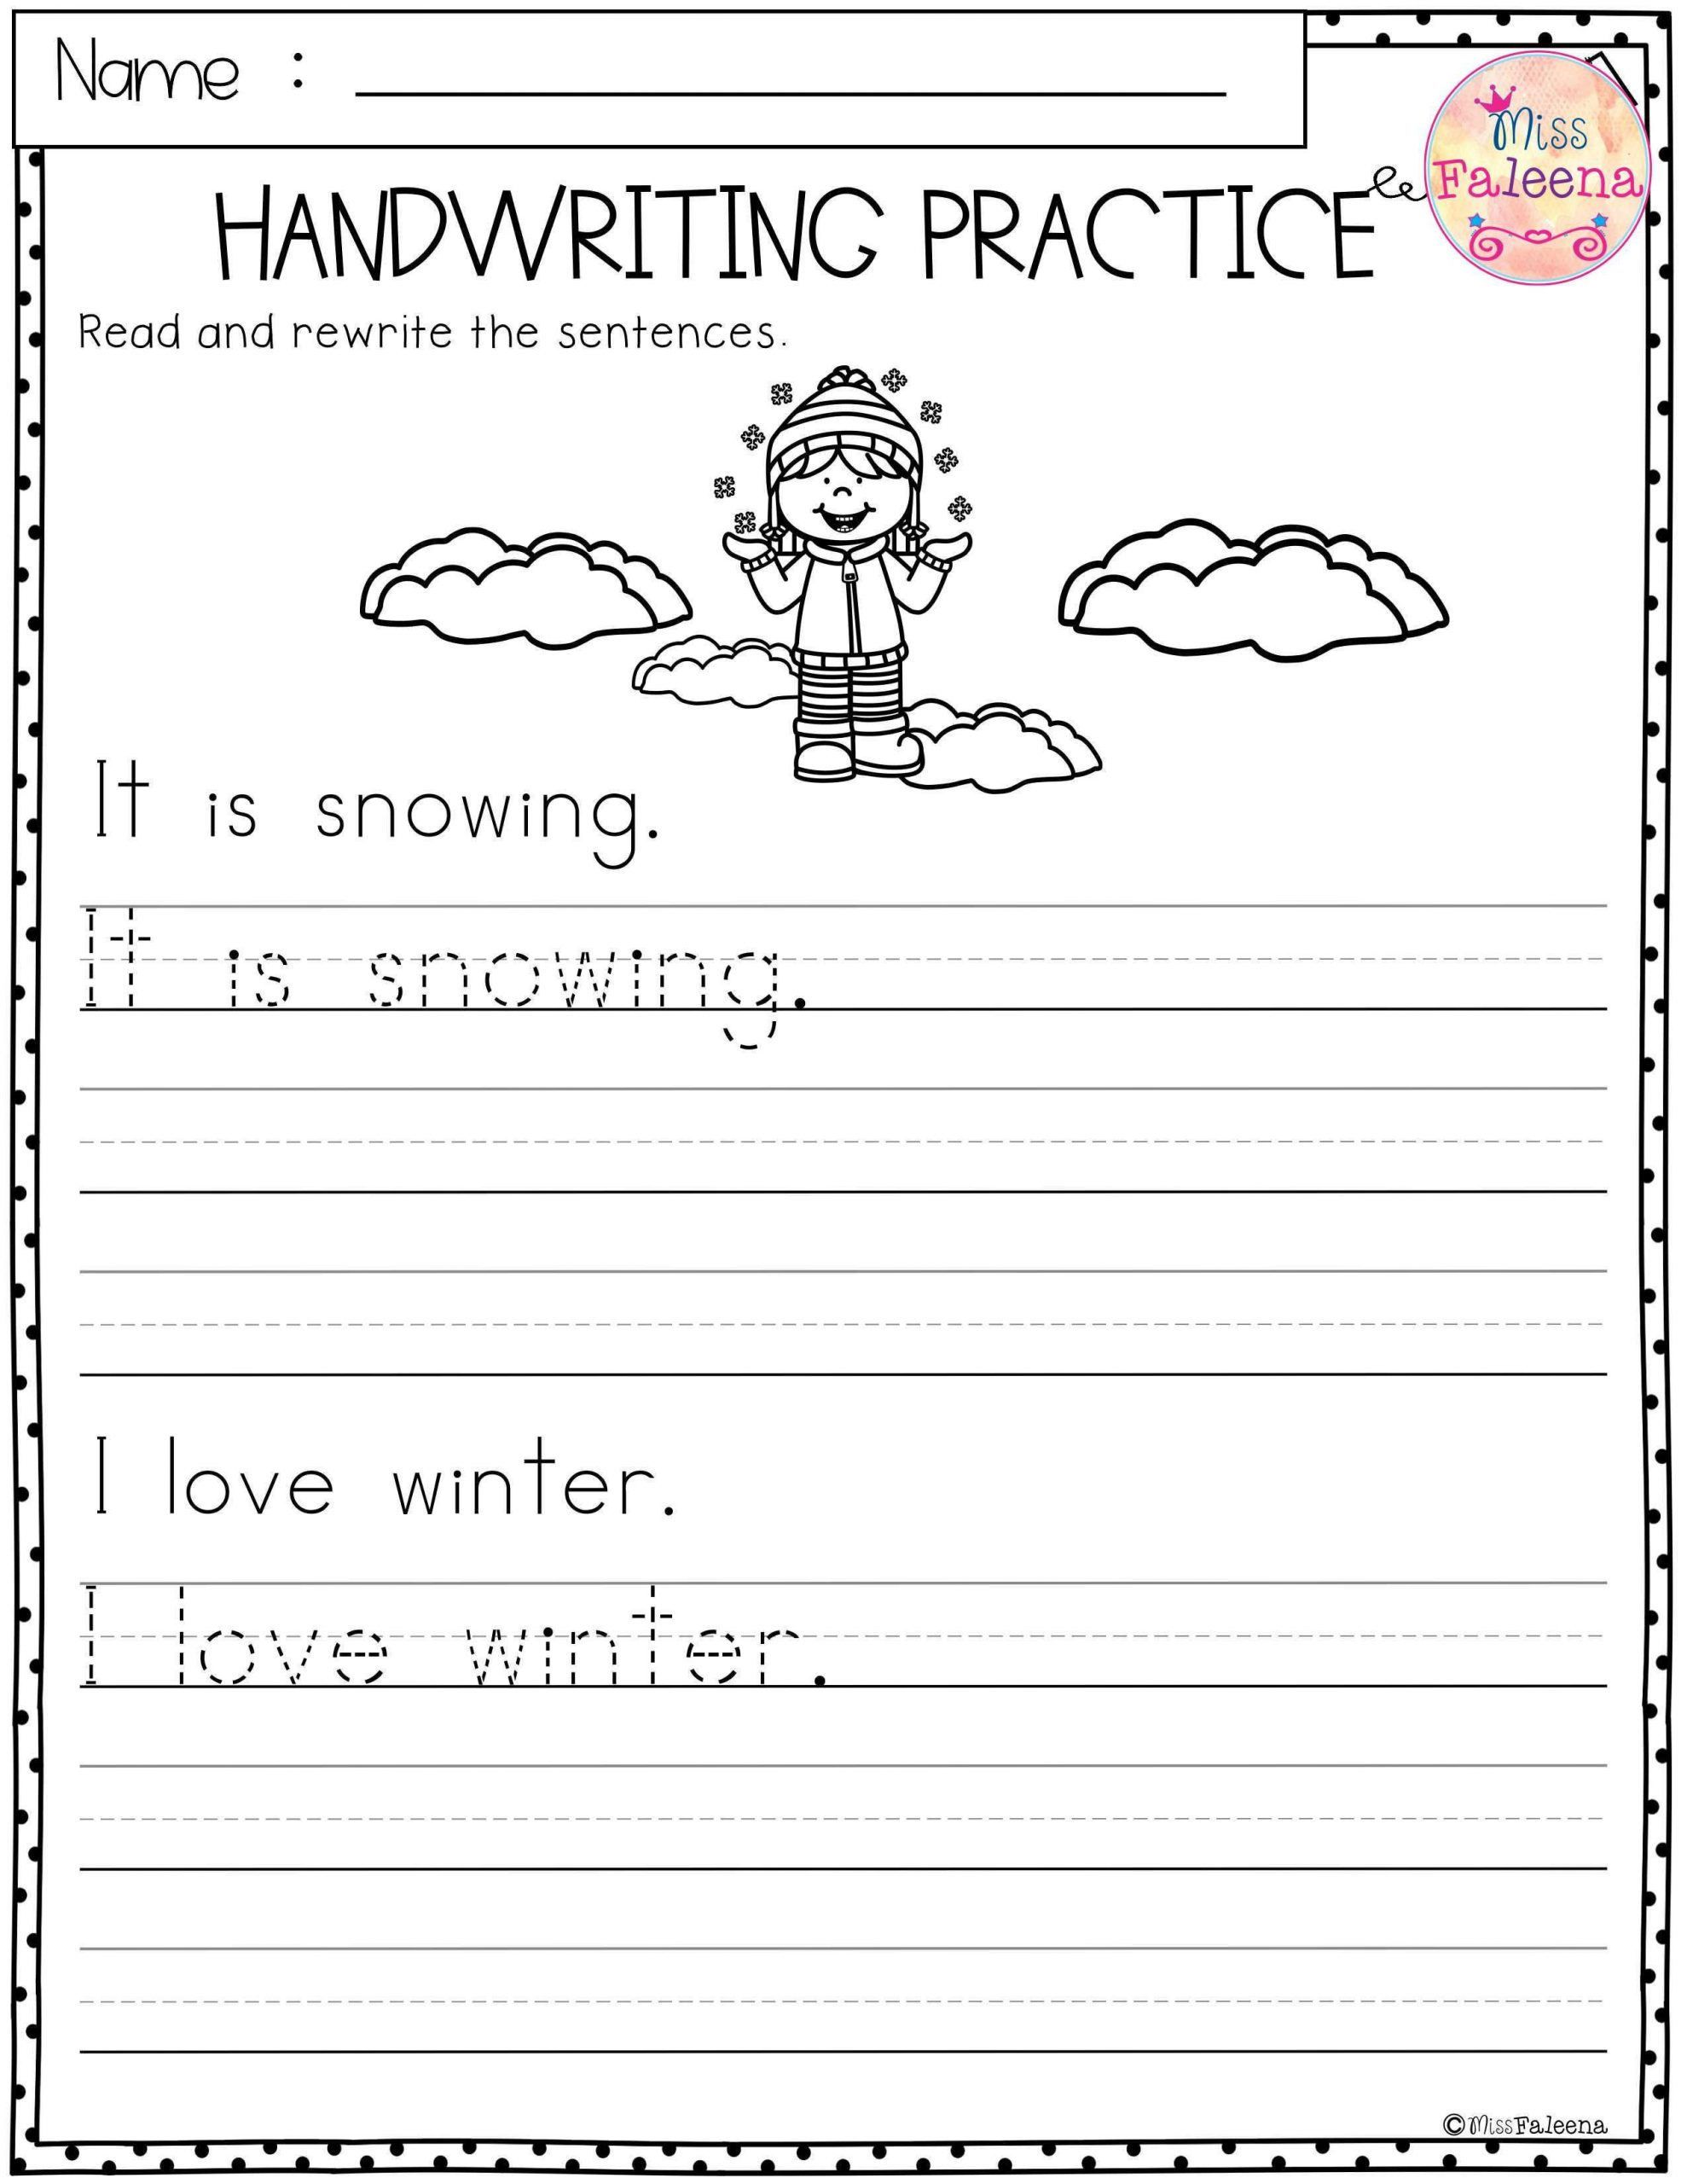 Kindergarten Writing Sentences Worksheets Winter Handwriting Practice This Product Has 20 Pages Of